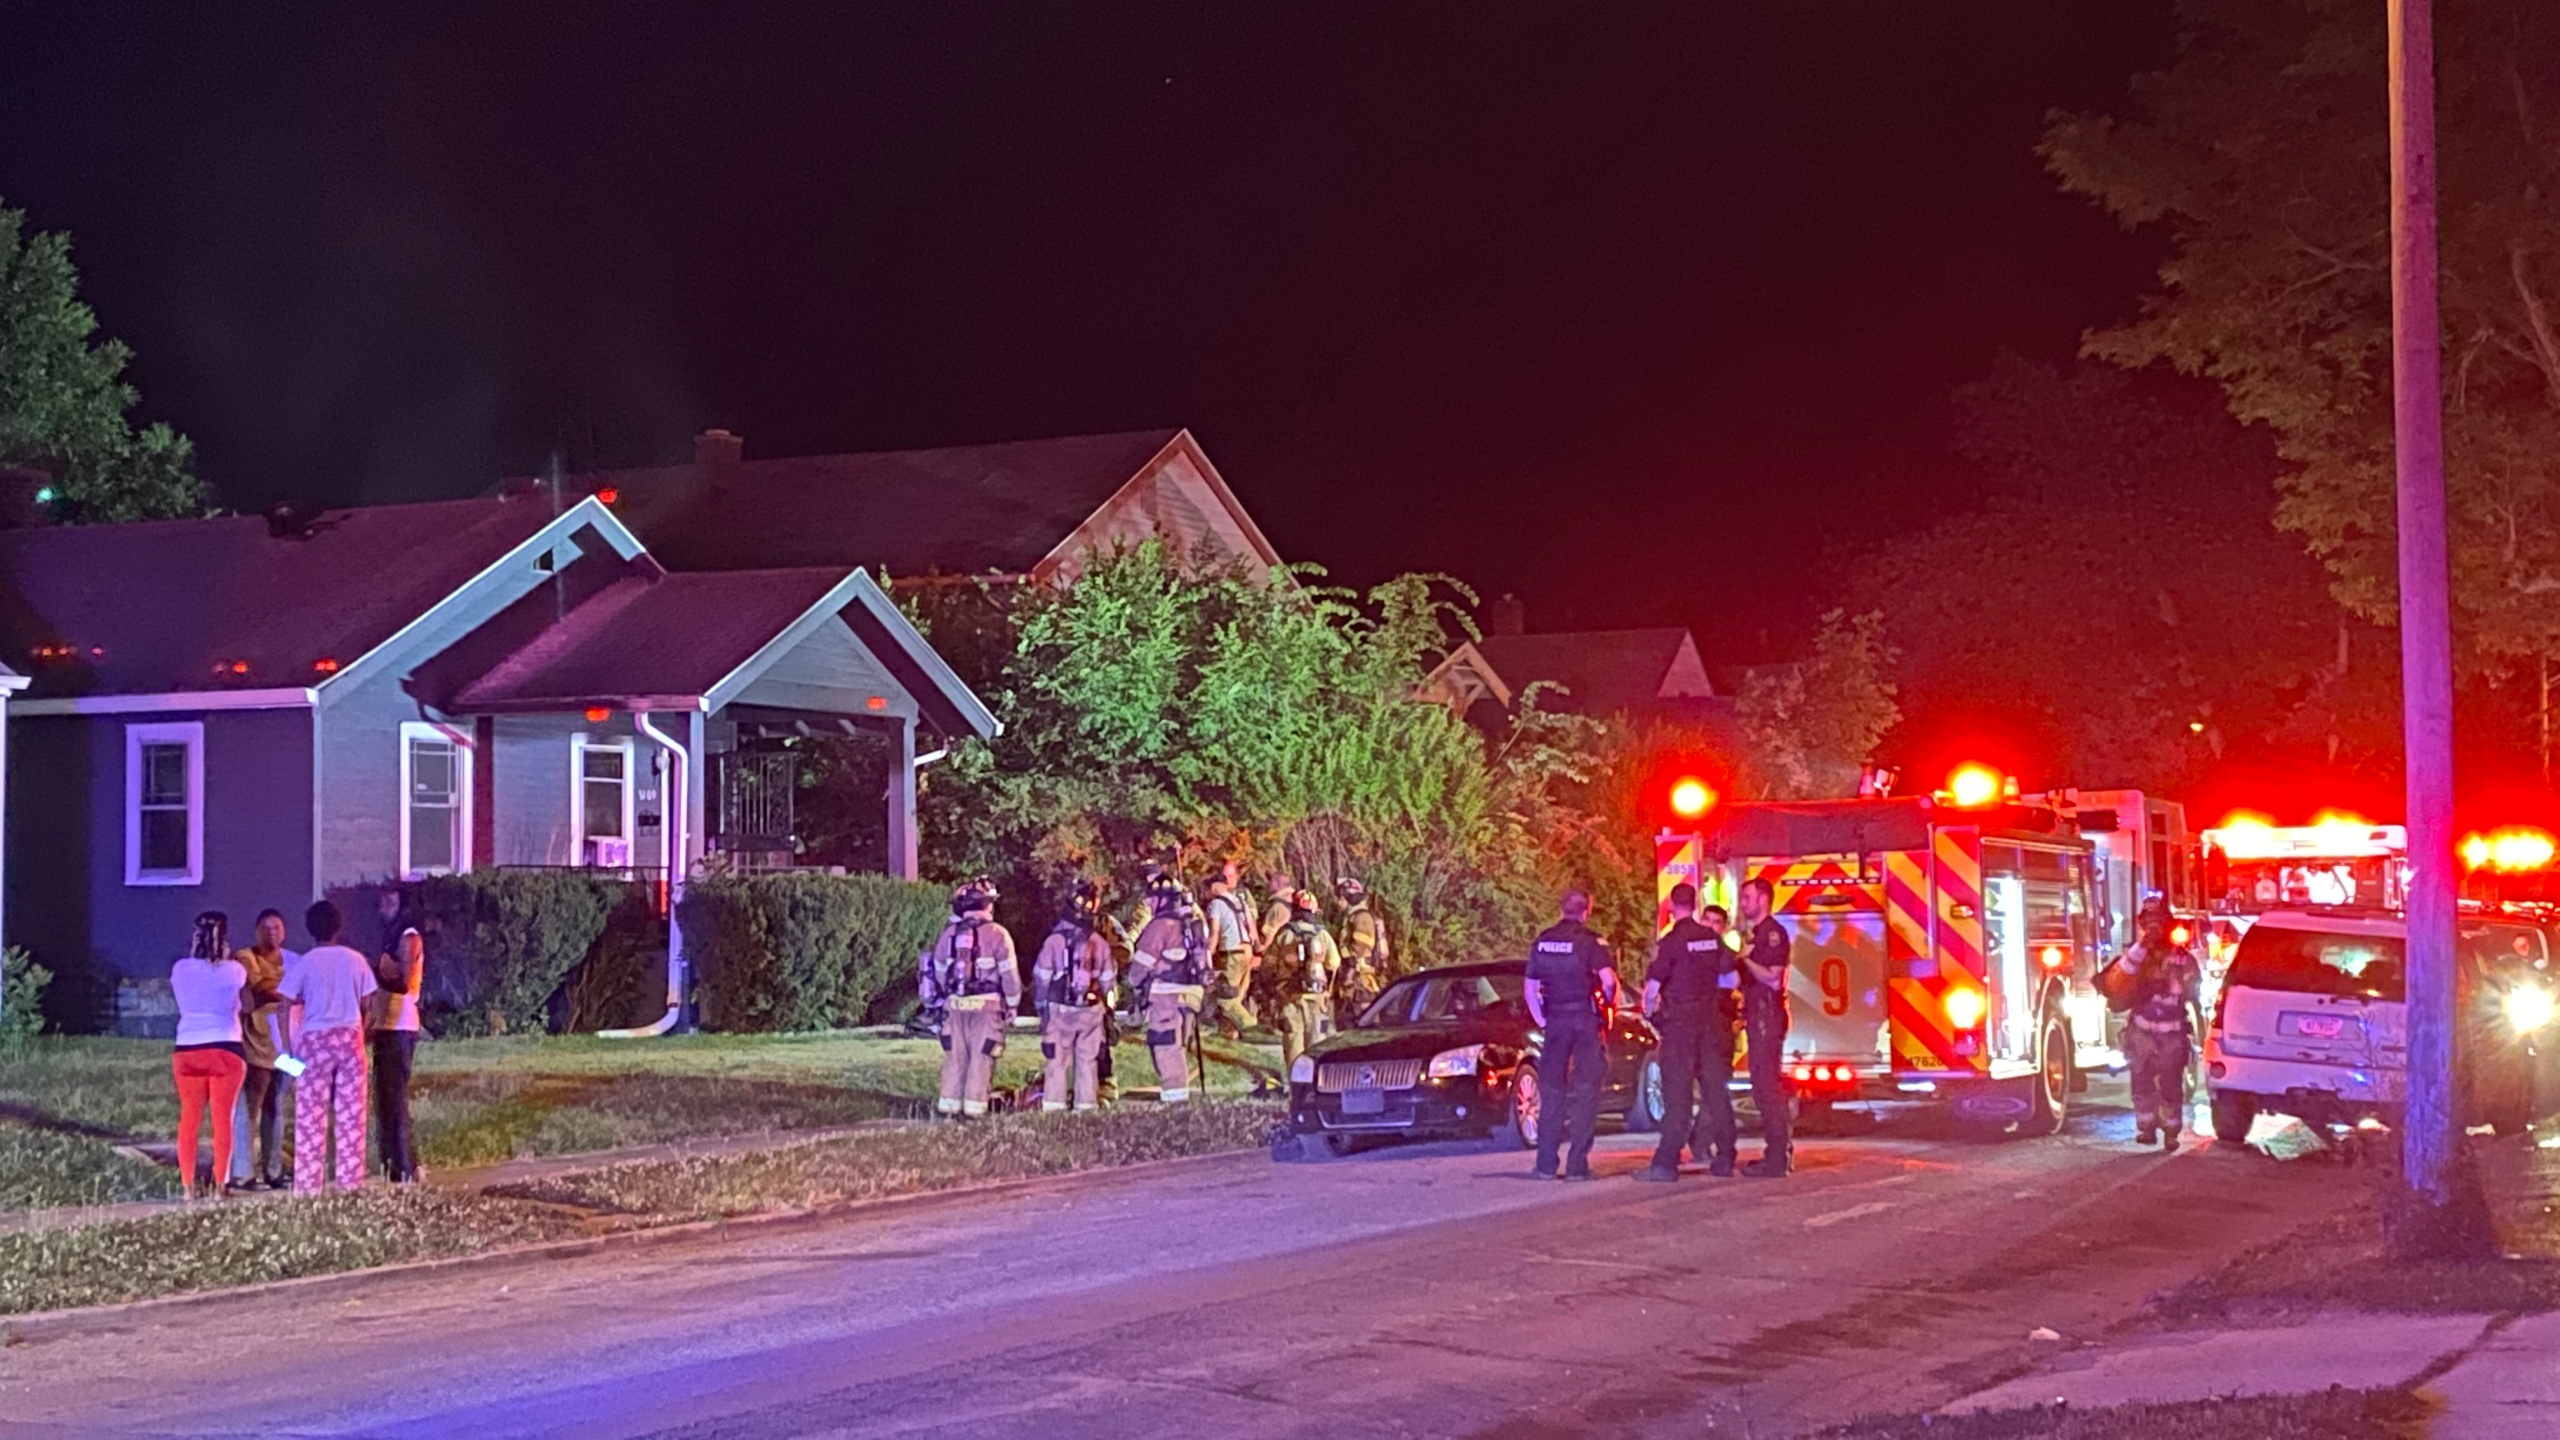 One person is hurt after a house fire early Thursday morning.